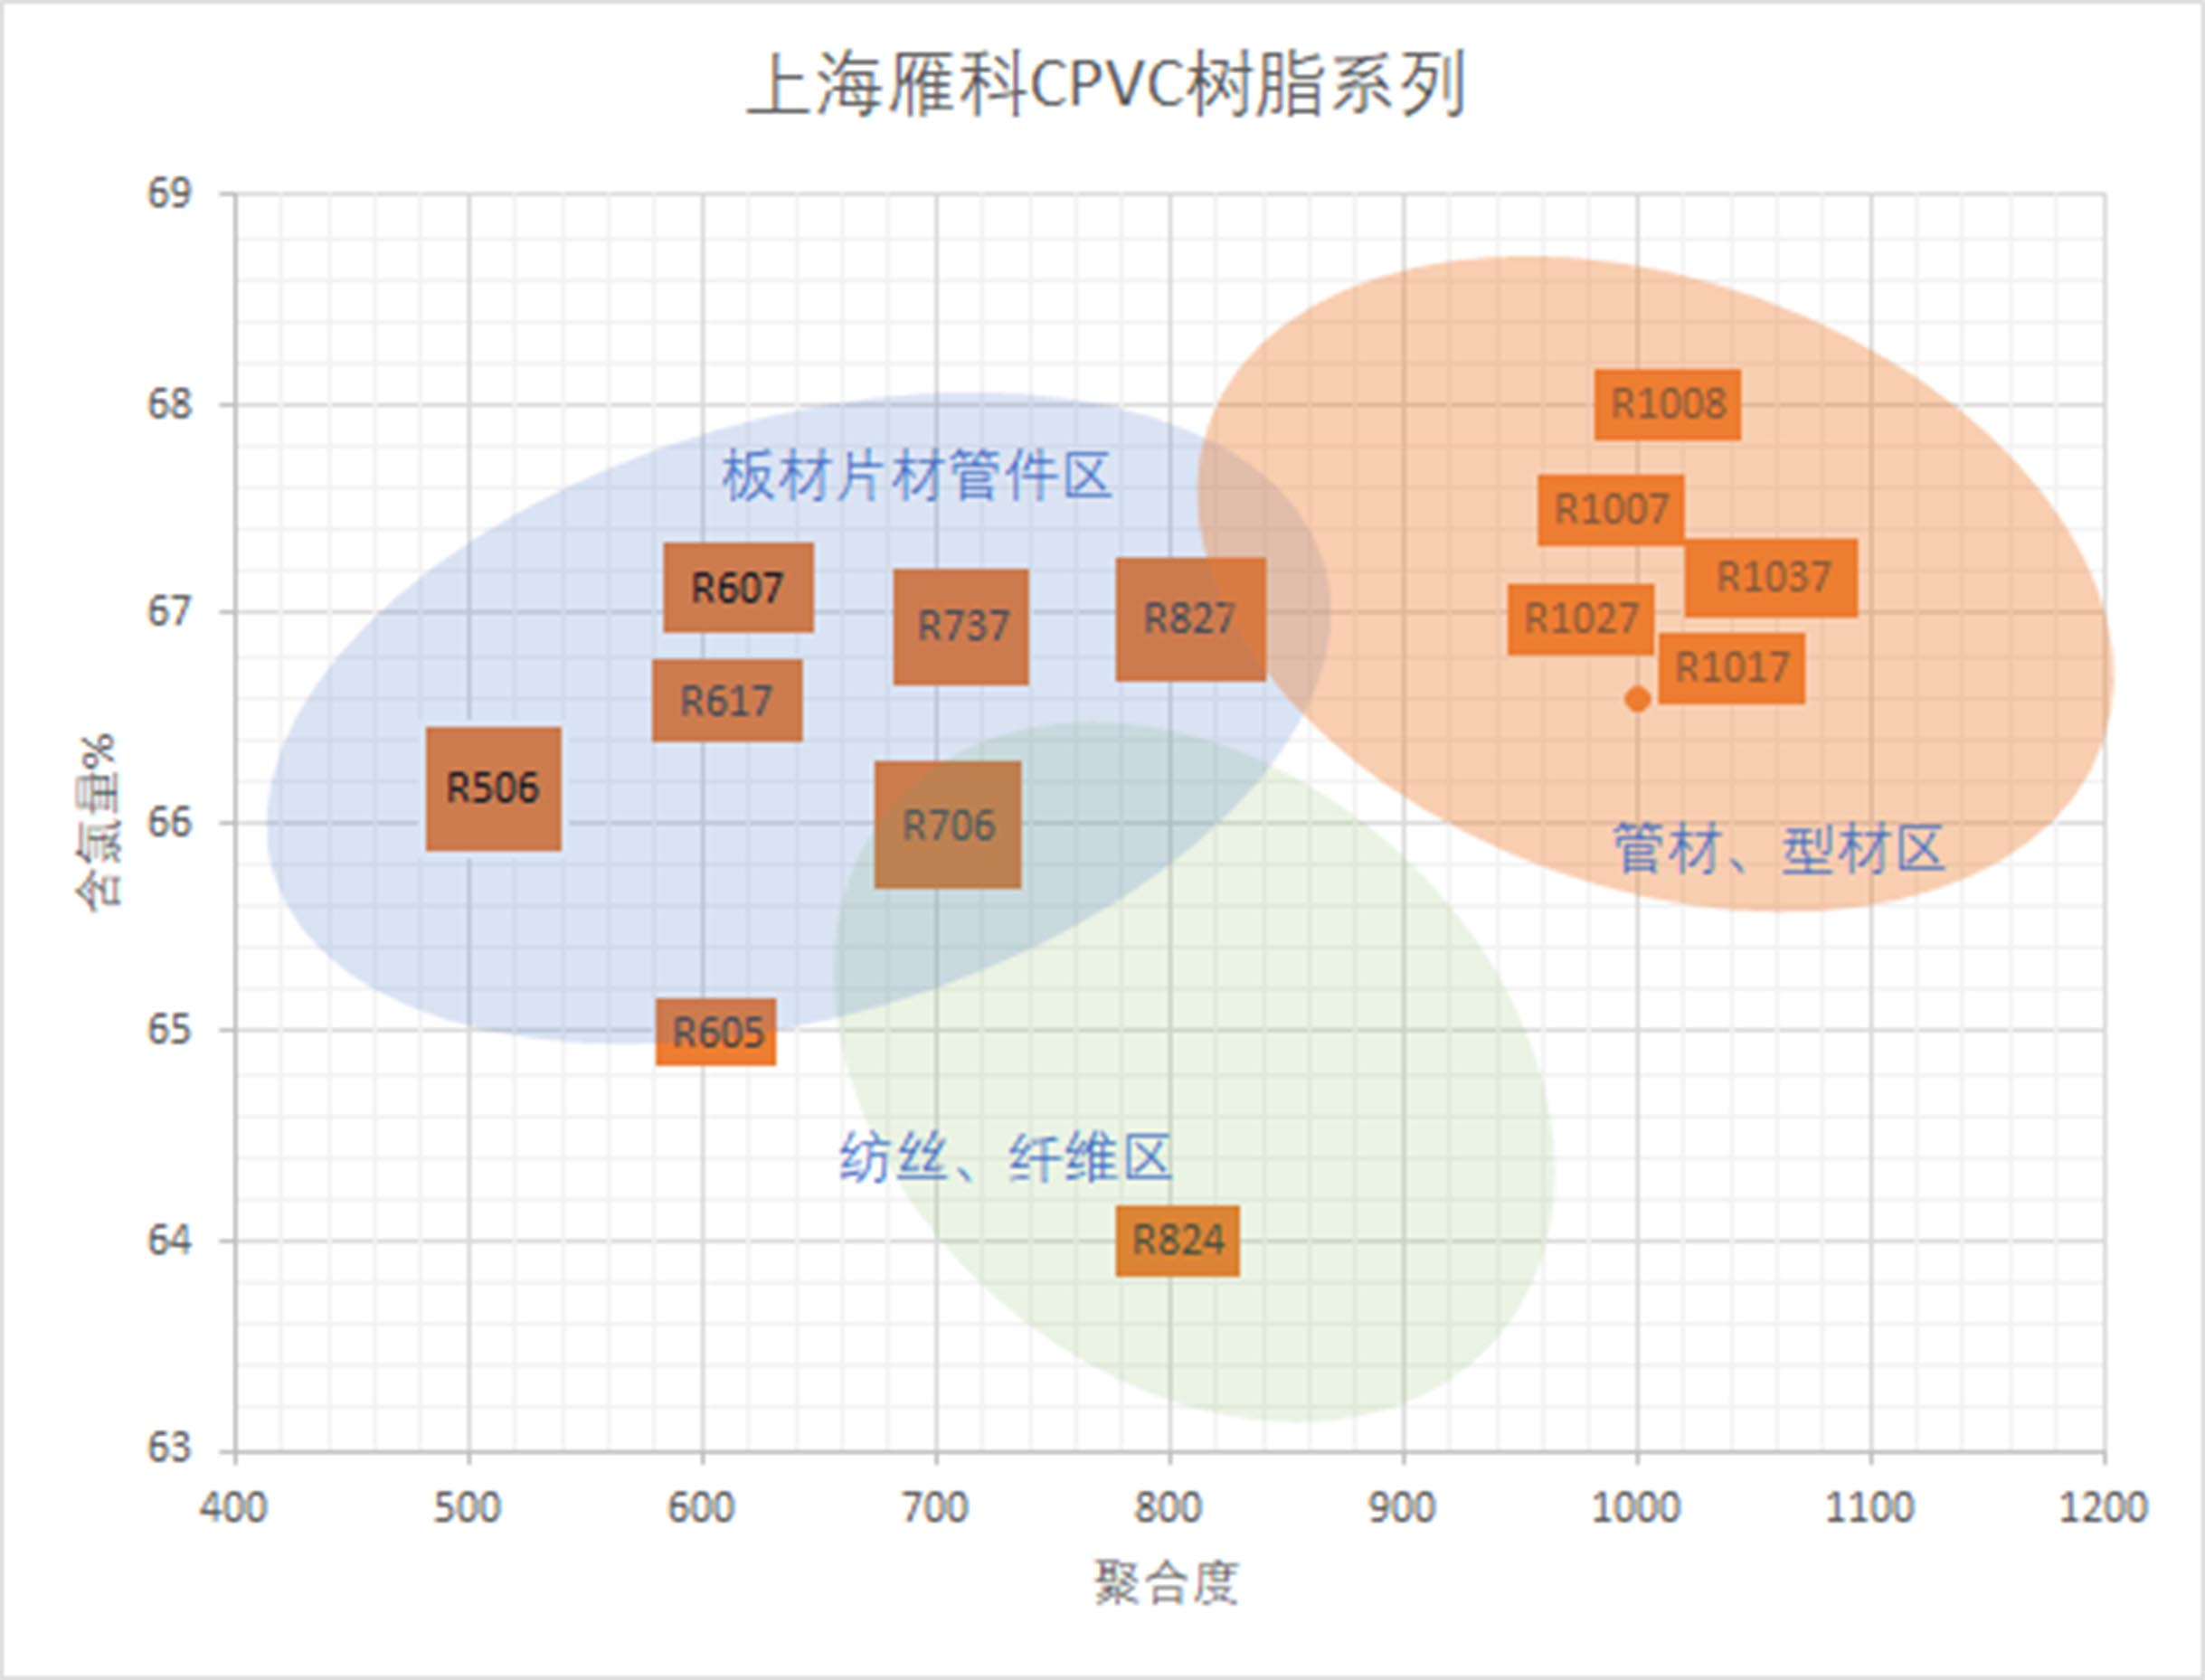 CPVC氯化聚氯乙烯树脂 白色粉料 塑料原料 Chlorinated Polyvinyl Chloride Resin